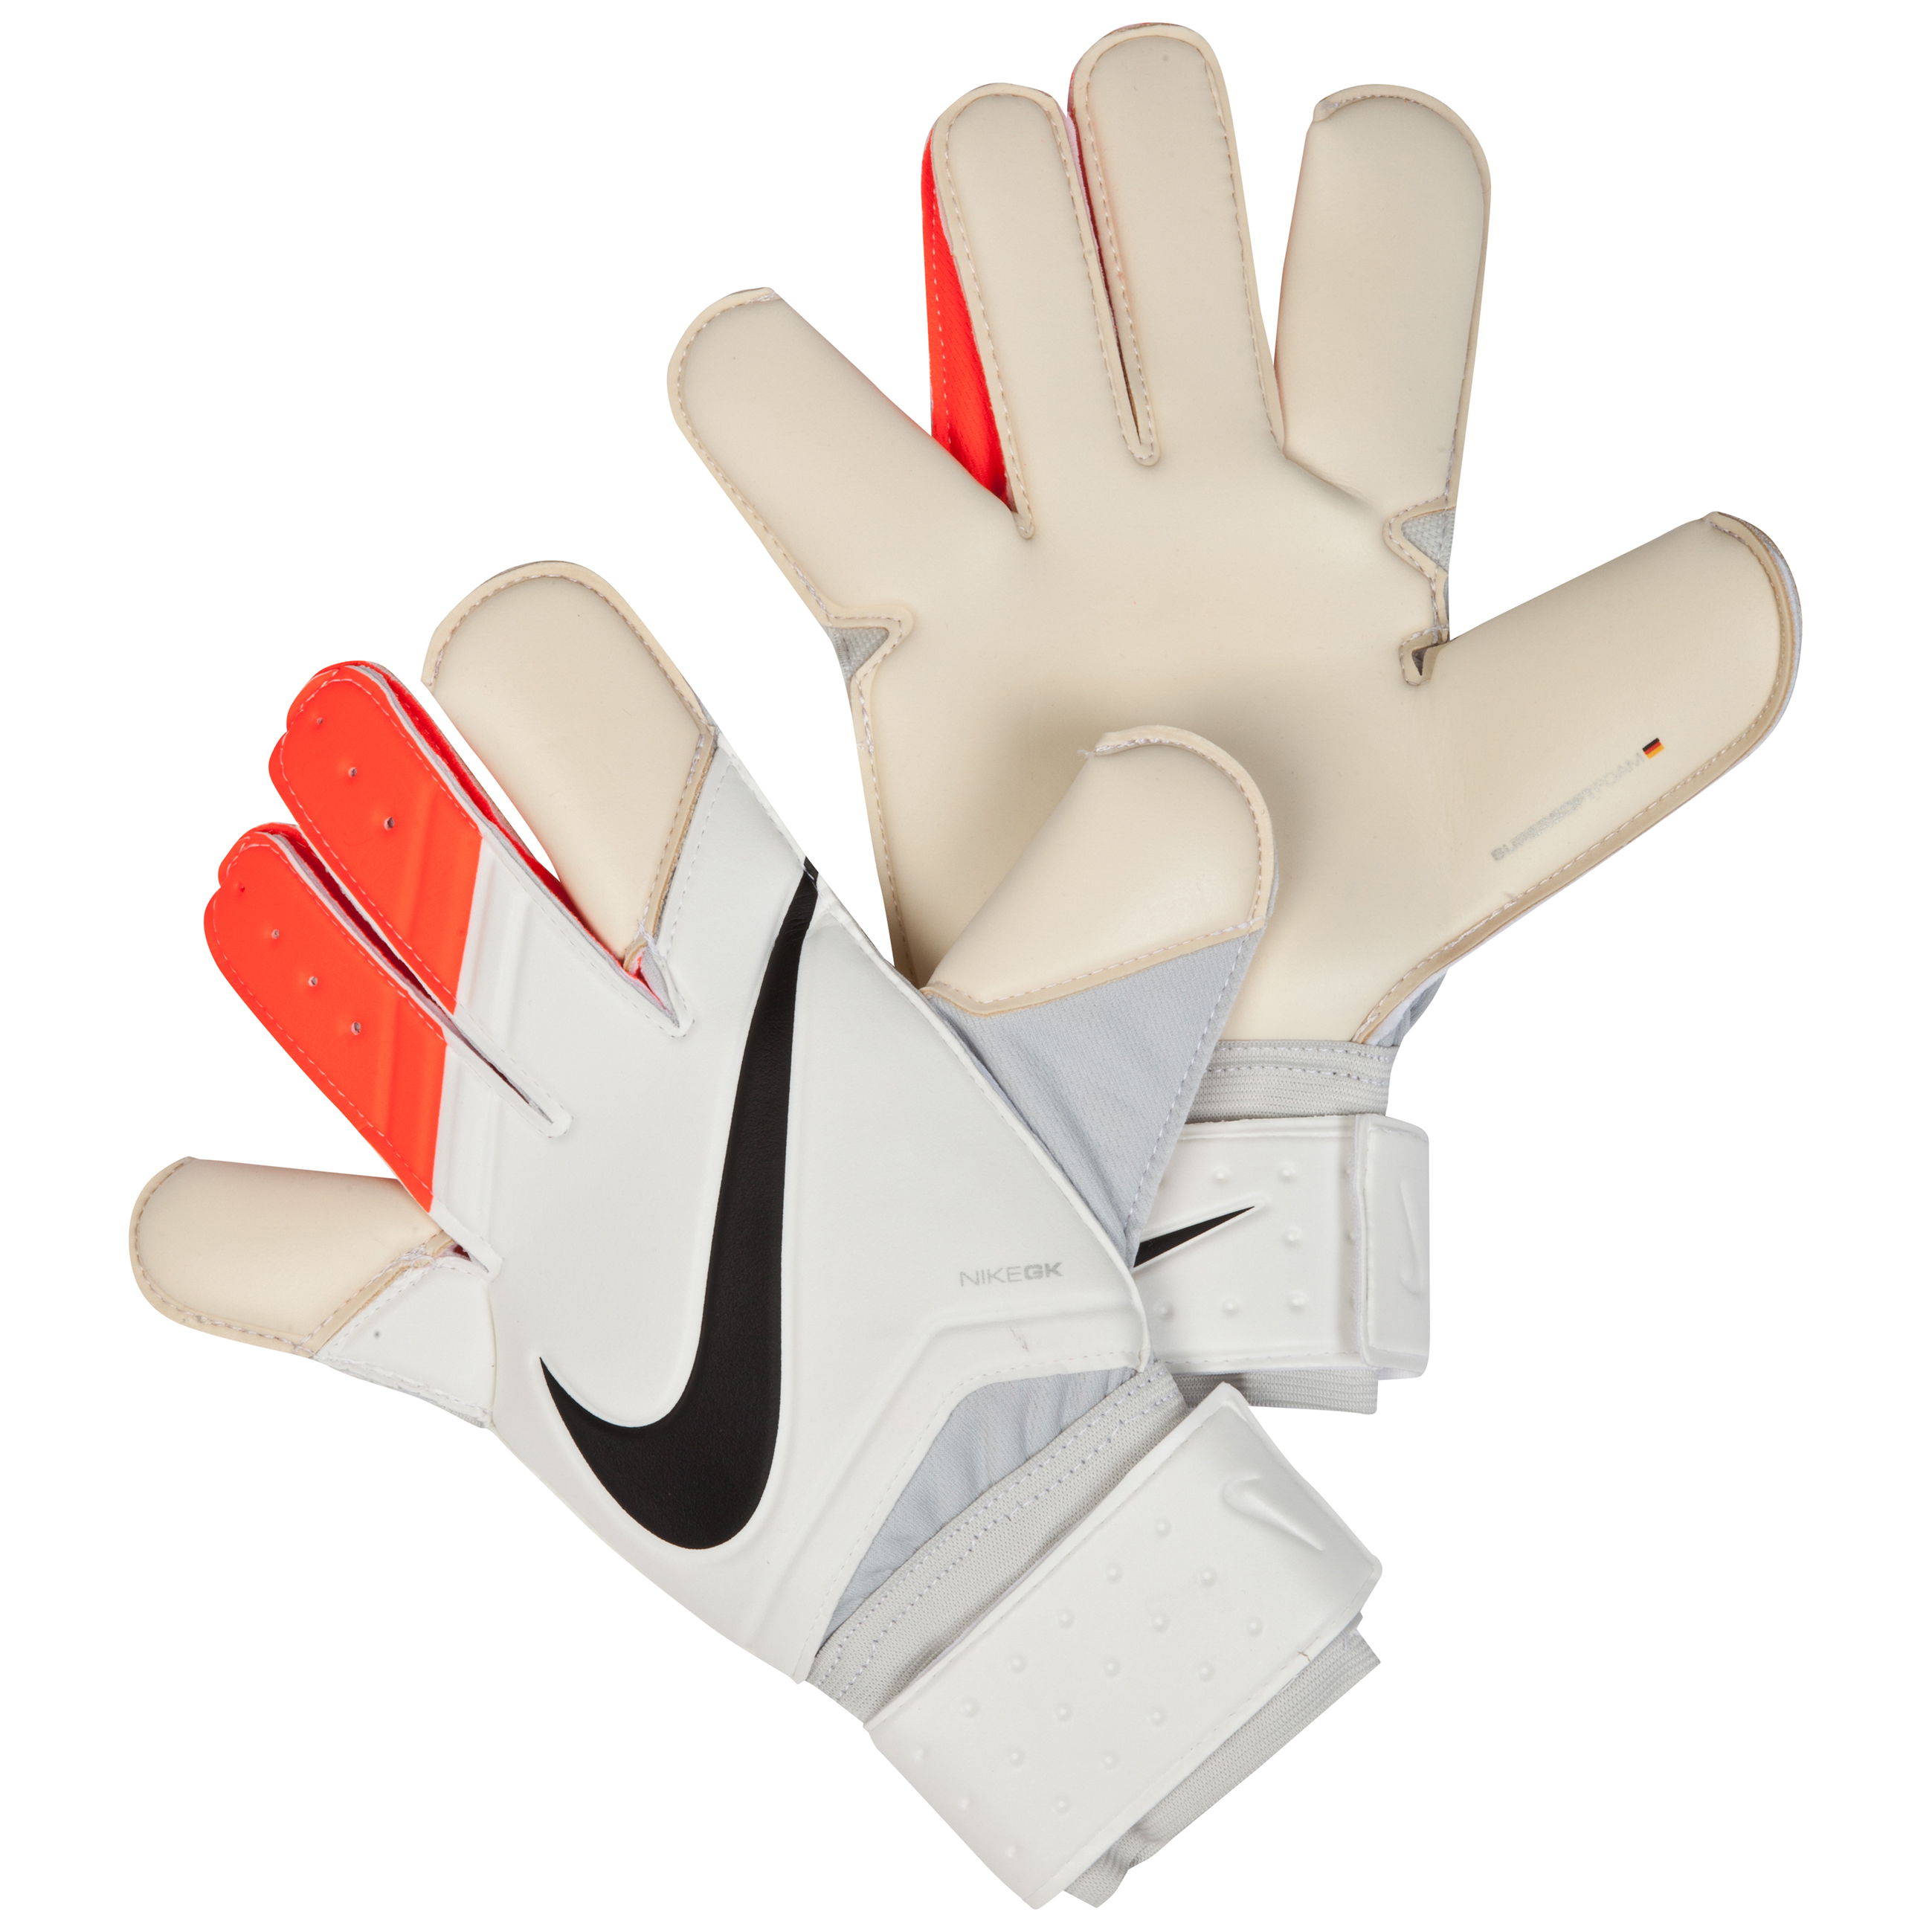 Nike Grip 3 Goalkeeper Glove White